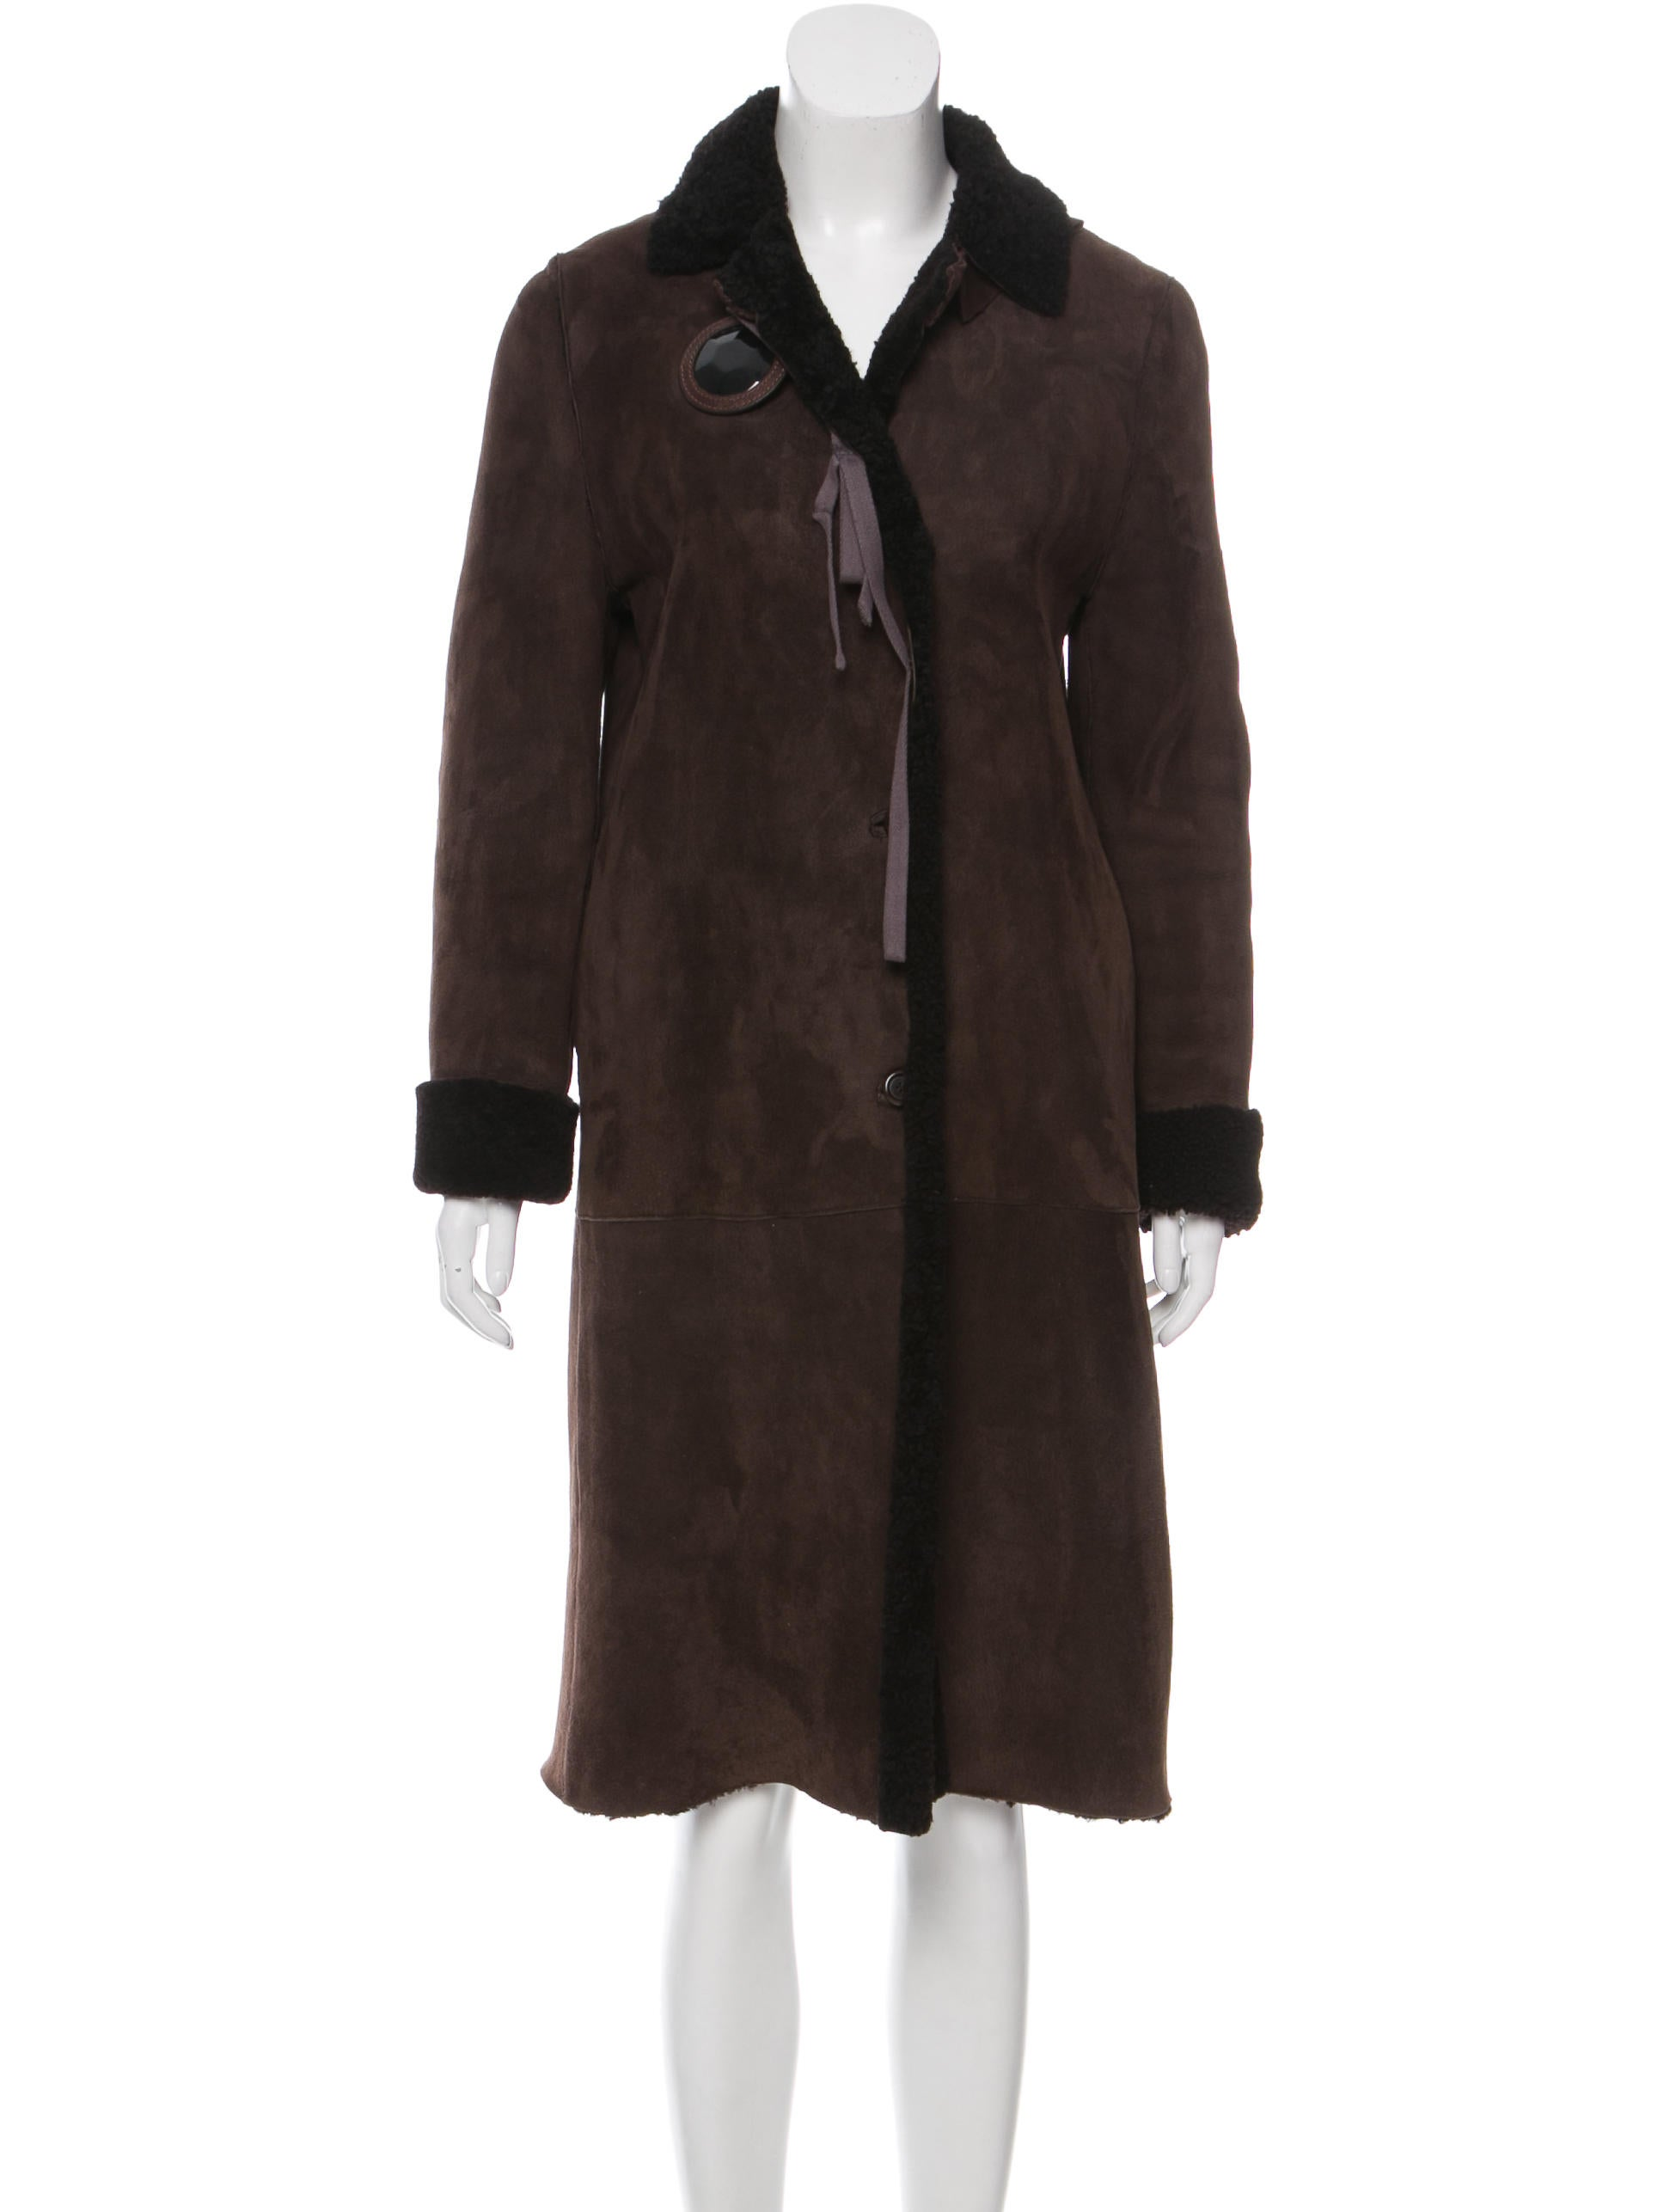 Find great deals on eBay for suede coat. Shop with confidence.